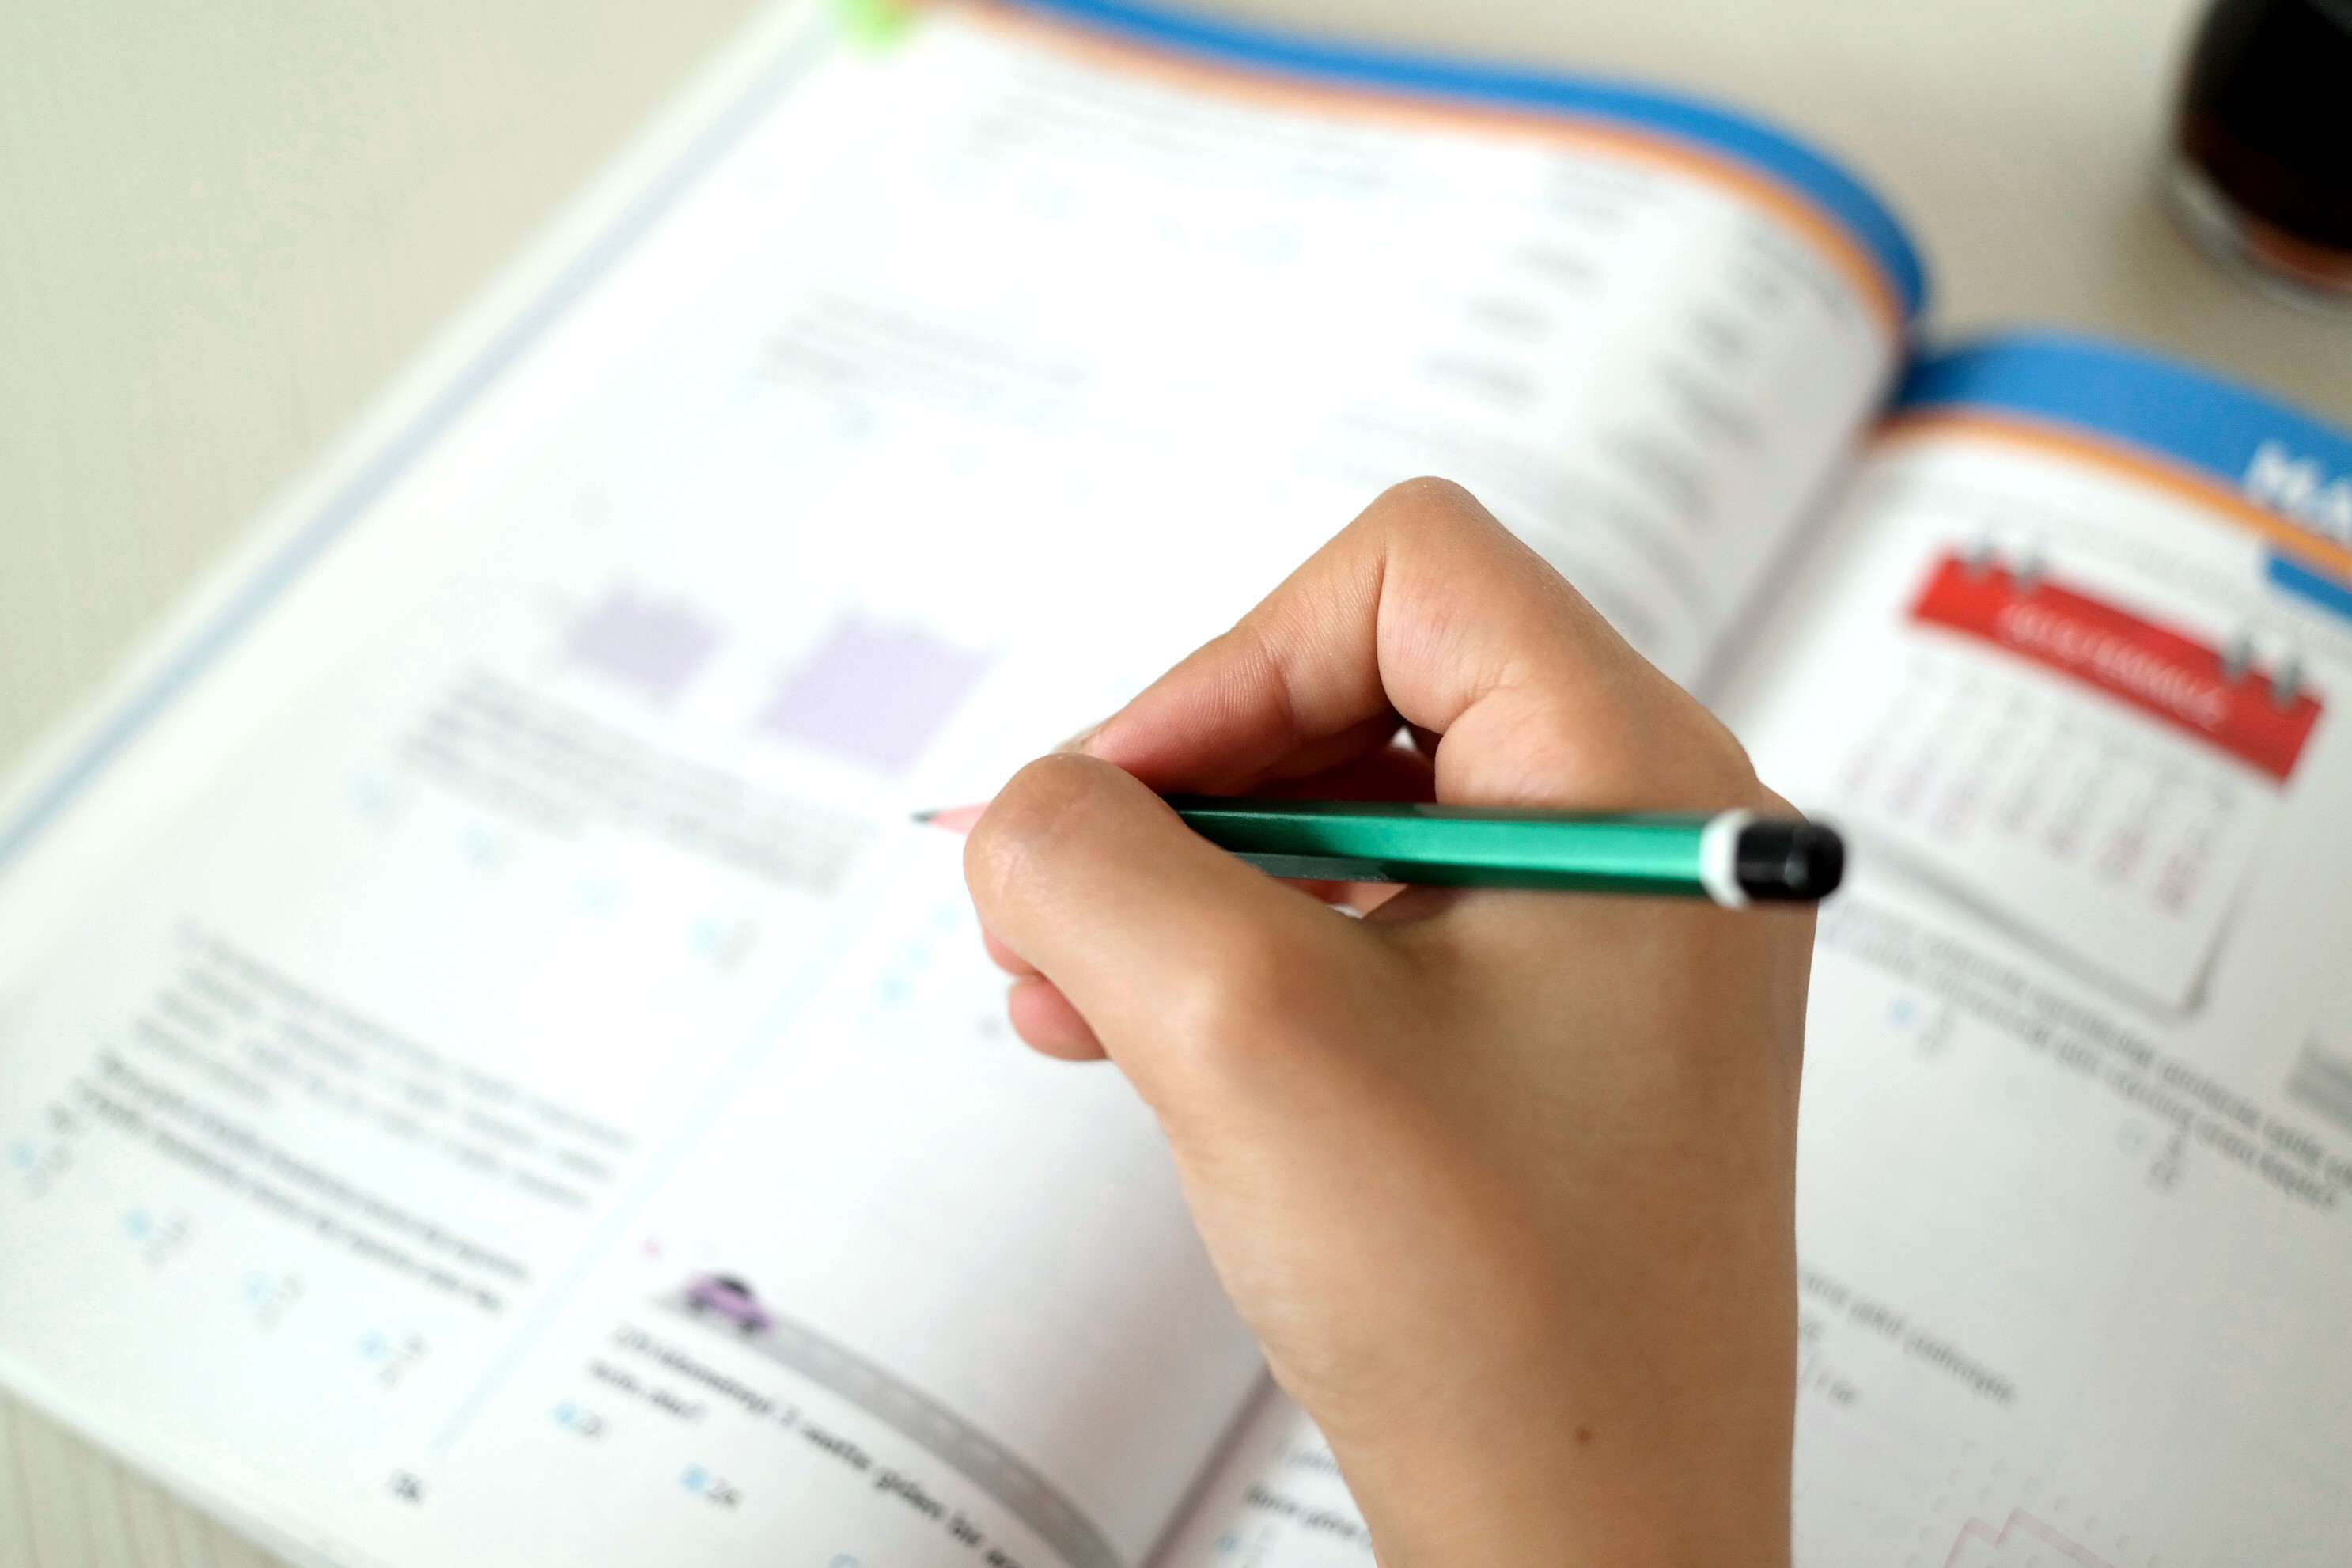 A student works to fill out a worksheet